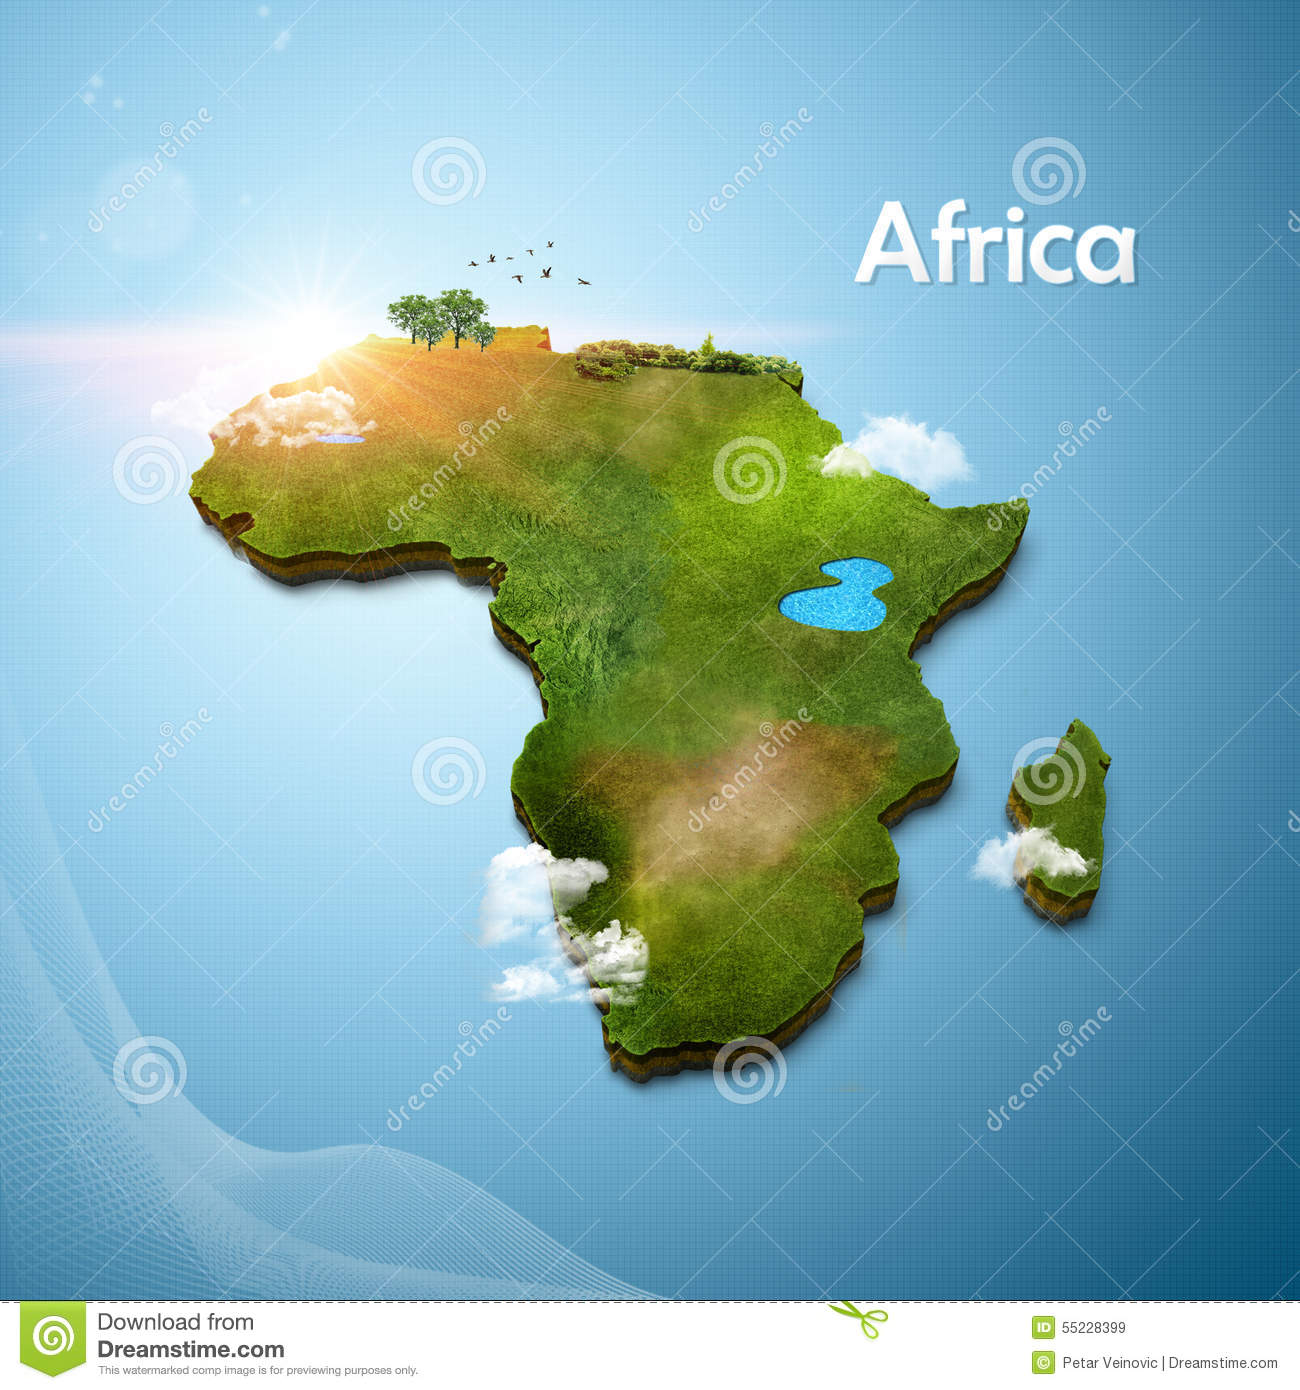 Realistic 3D Map of Africa stock illustration. Illustration of